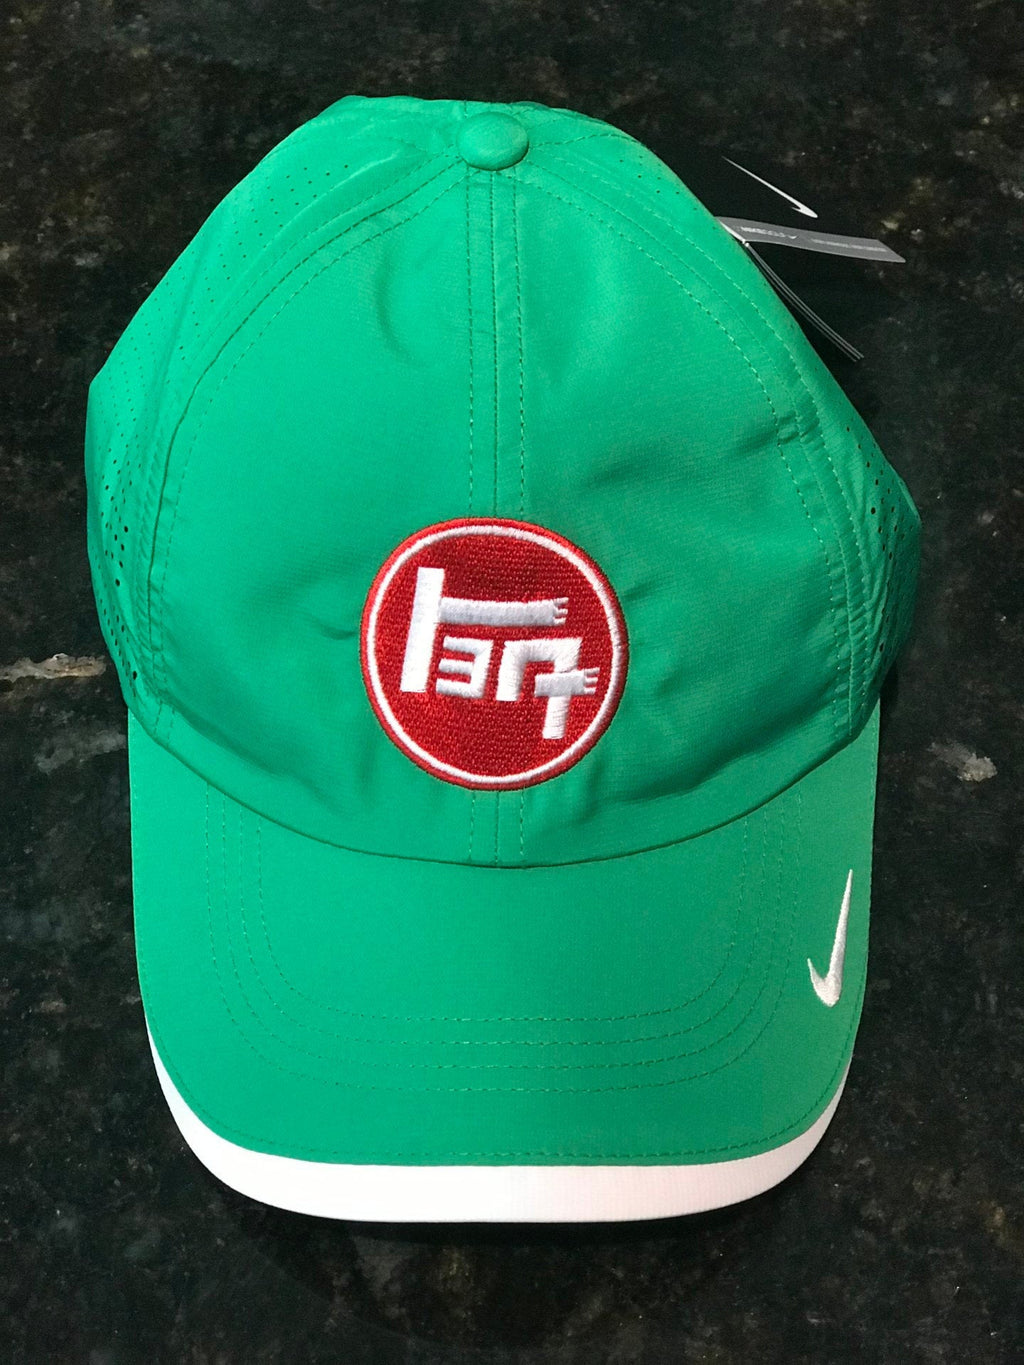 Nike Golf - Dri-FIT Swoosh Perforated hat - Toyota TEQ logo by Reefmonkey